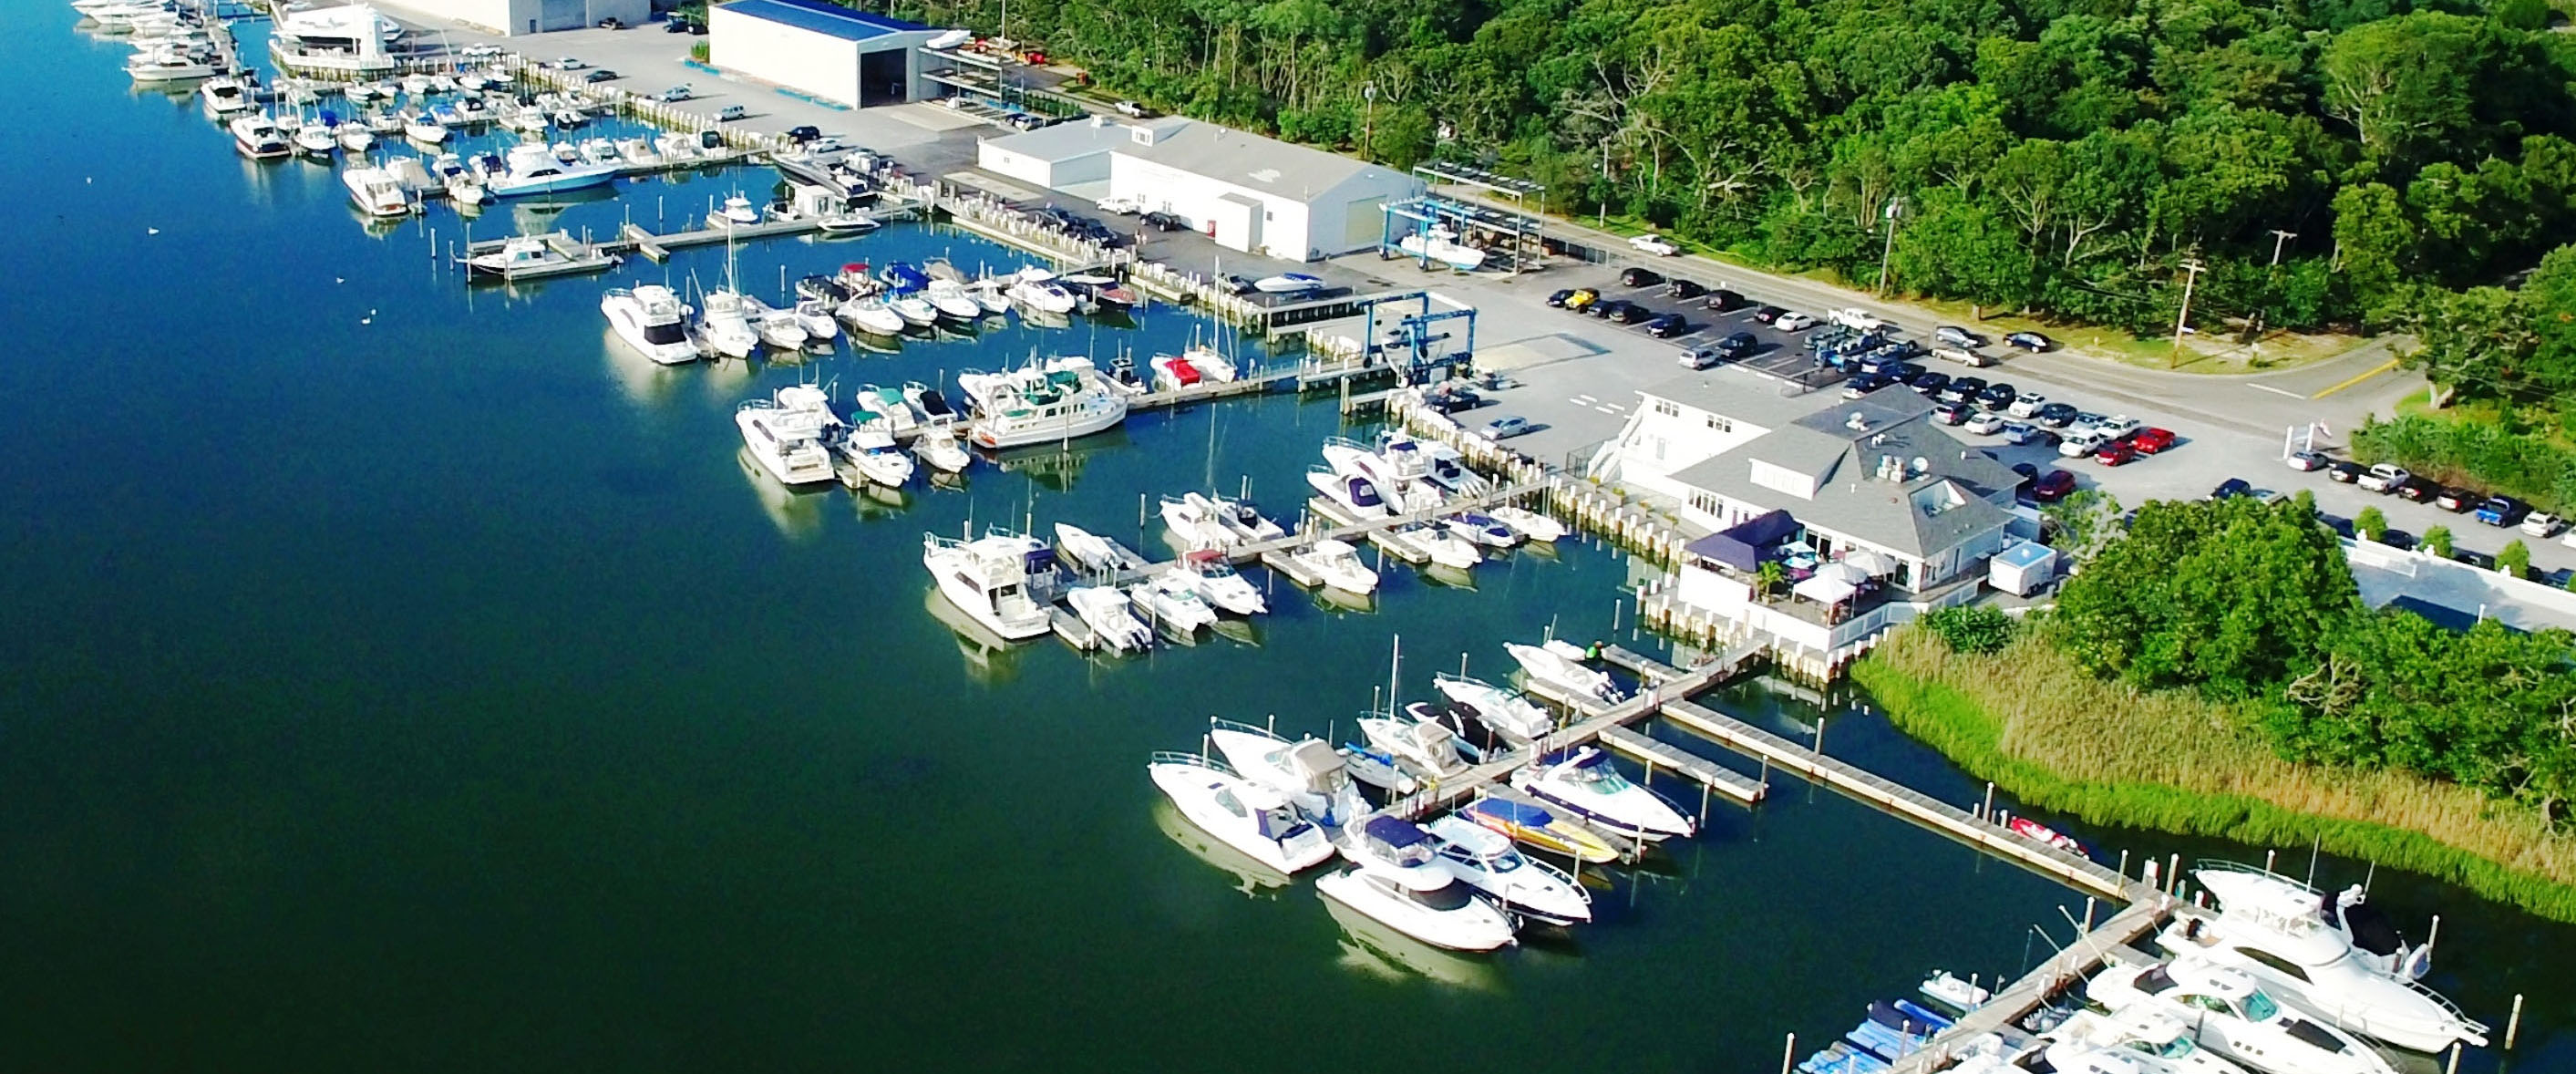 Overhead shot of lighthouse marina